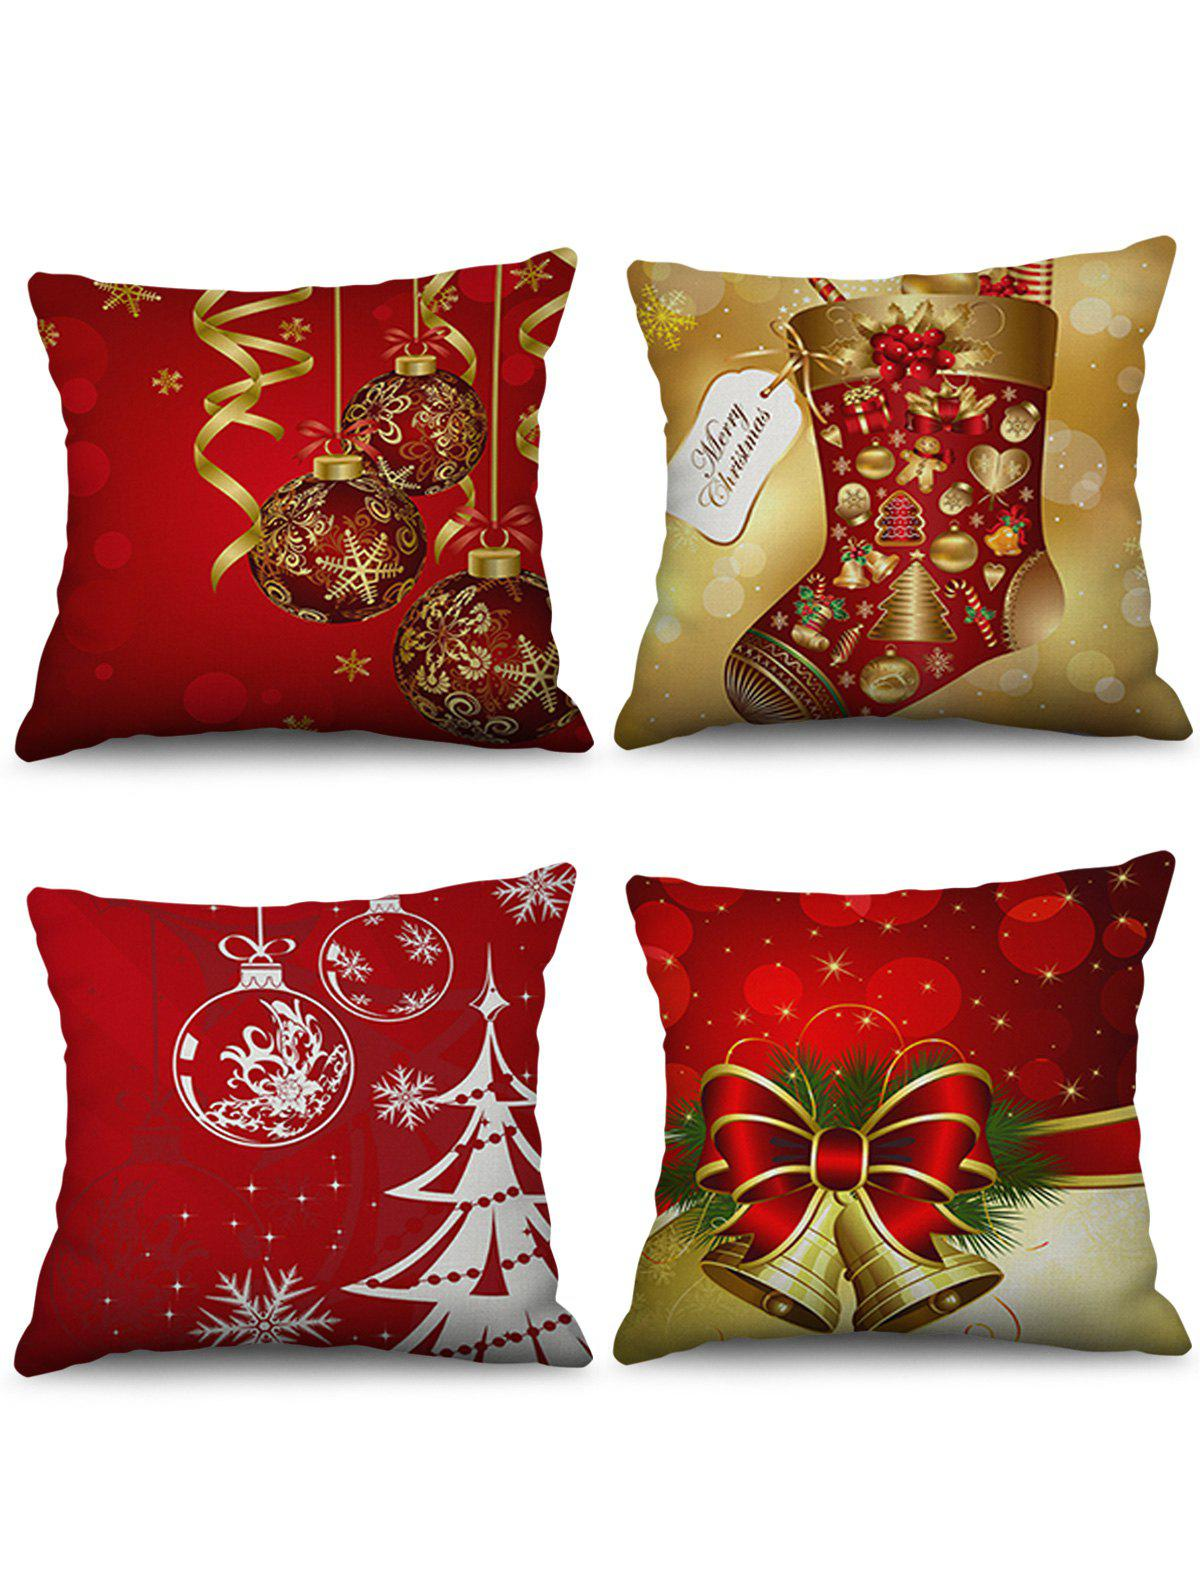 Hot Christmas Decorations Pattern Throw Pillow Cases